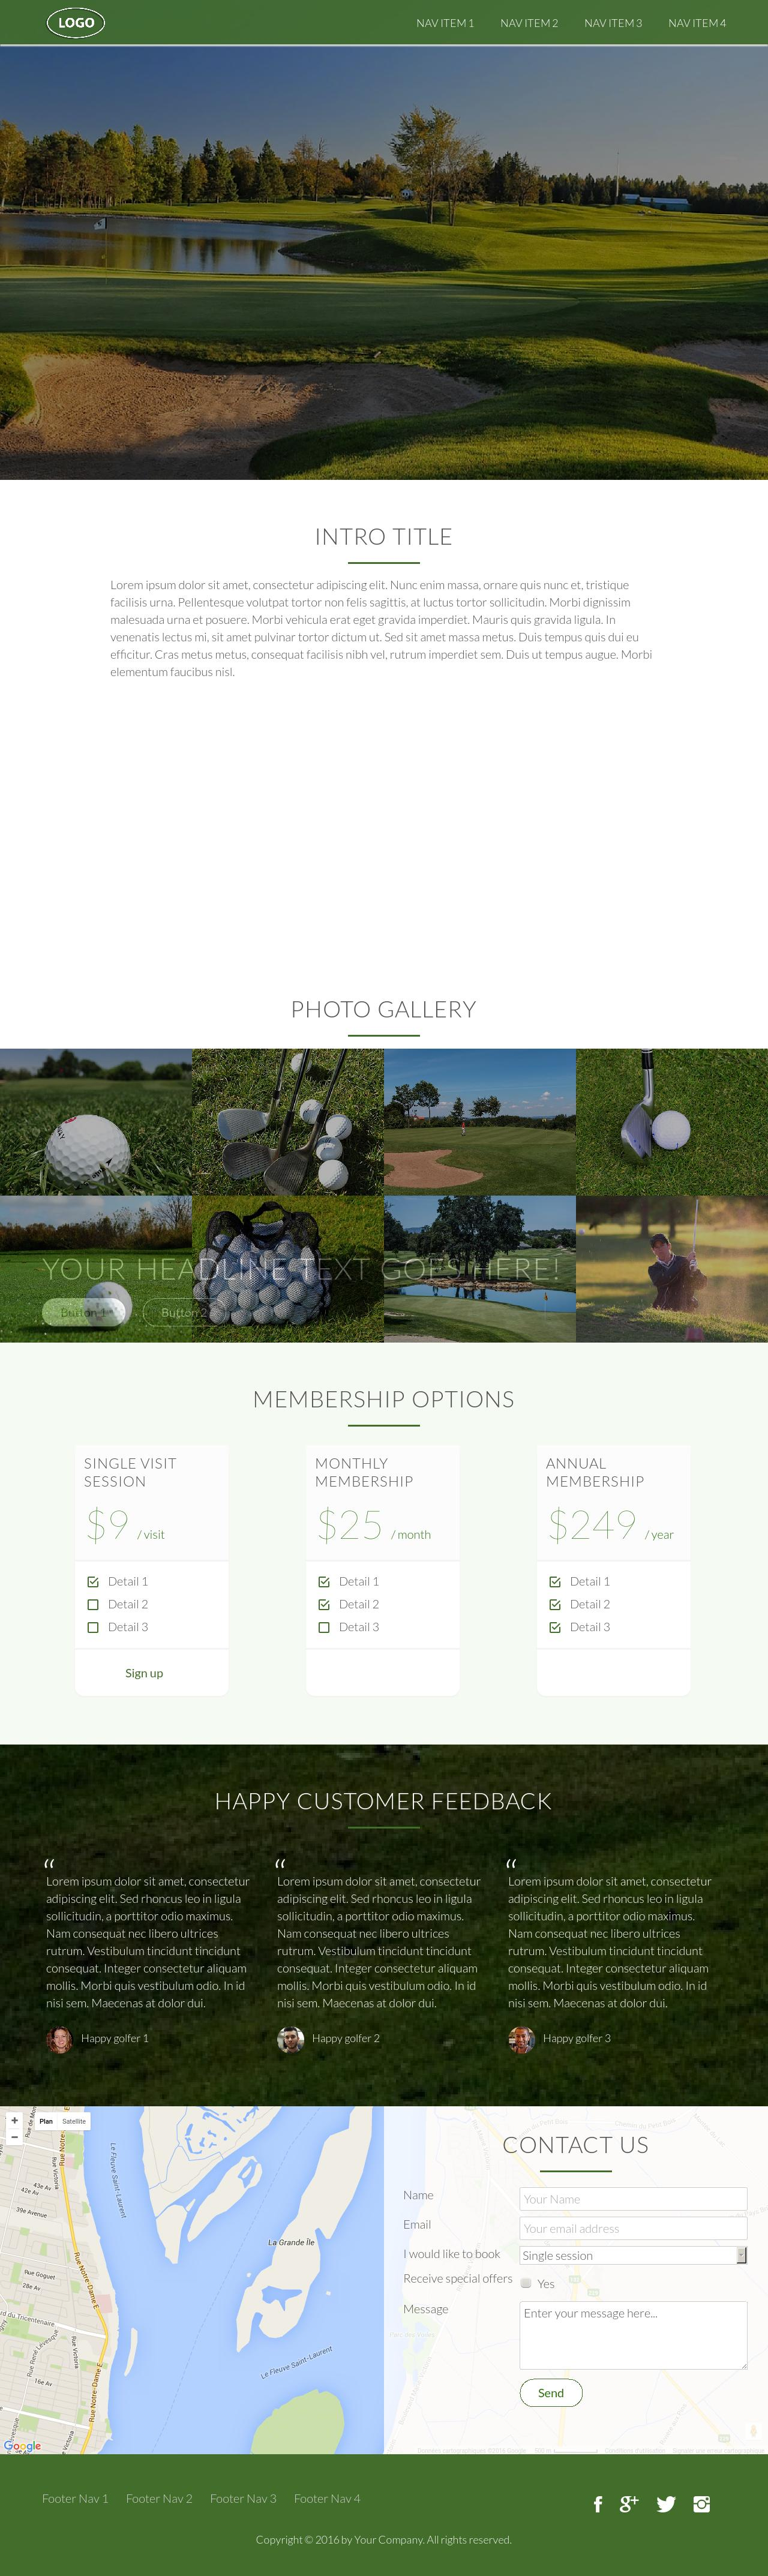 2x Responsive Onepager HTML5 CSS3